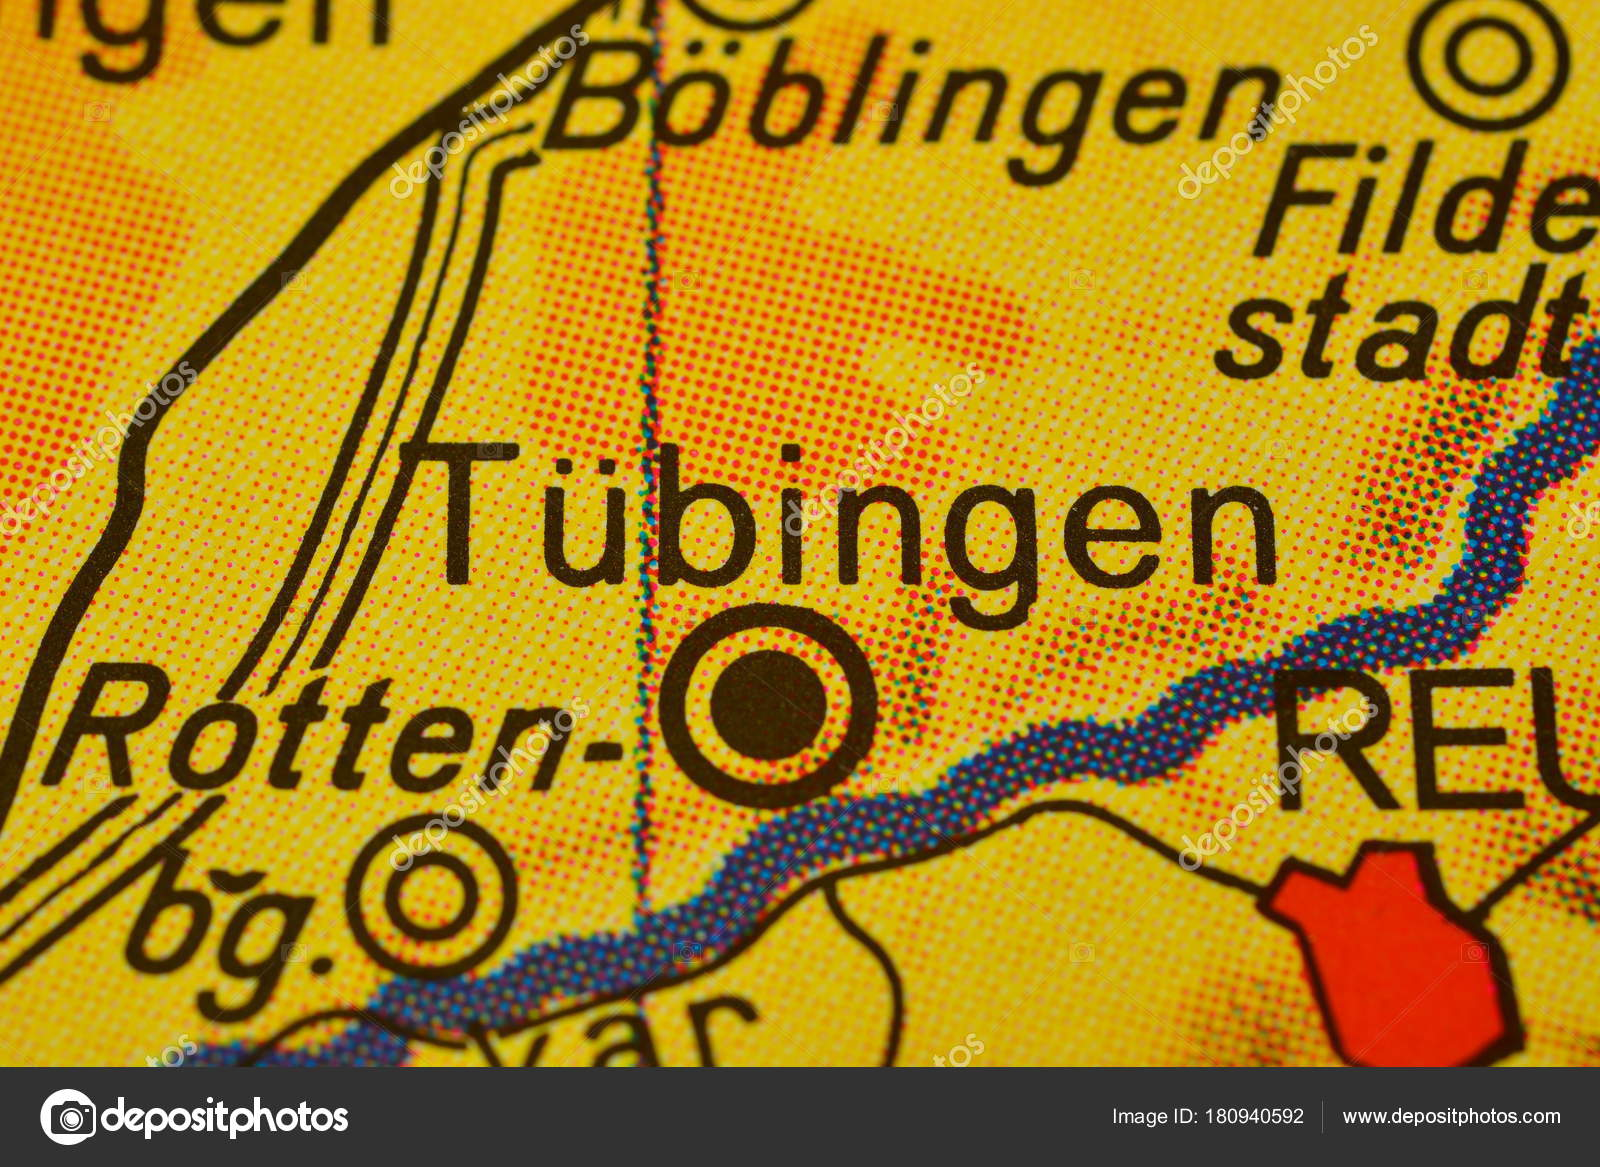 city name tbingen tubingen germany on the map photo by photographer 20